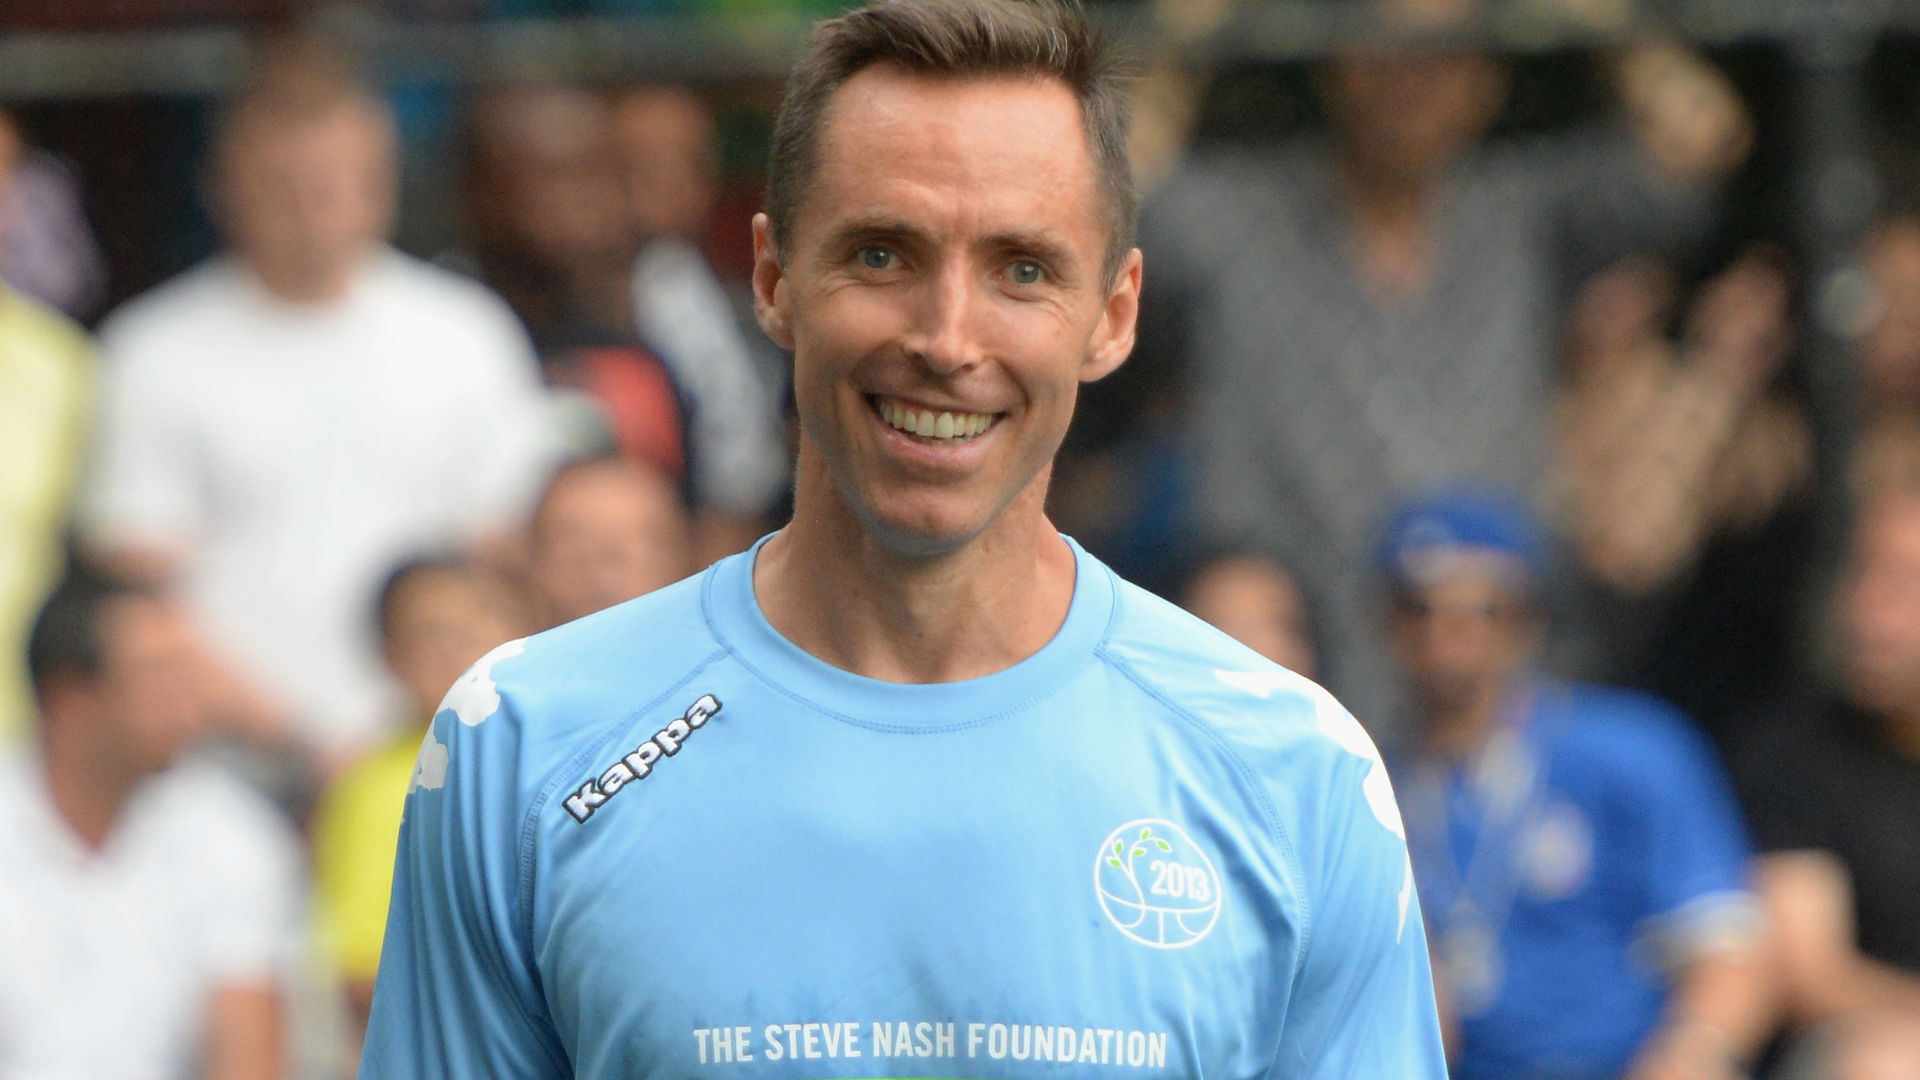 NBA legend Steve Nash launches professional soccer career